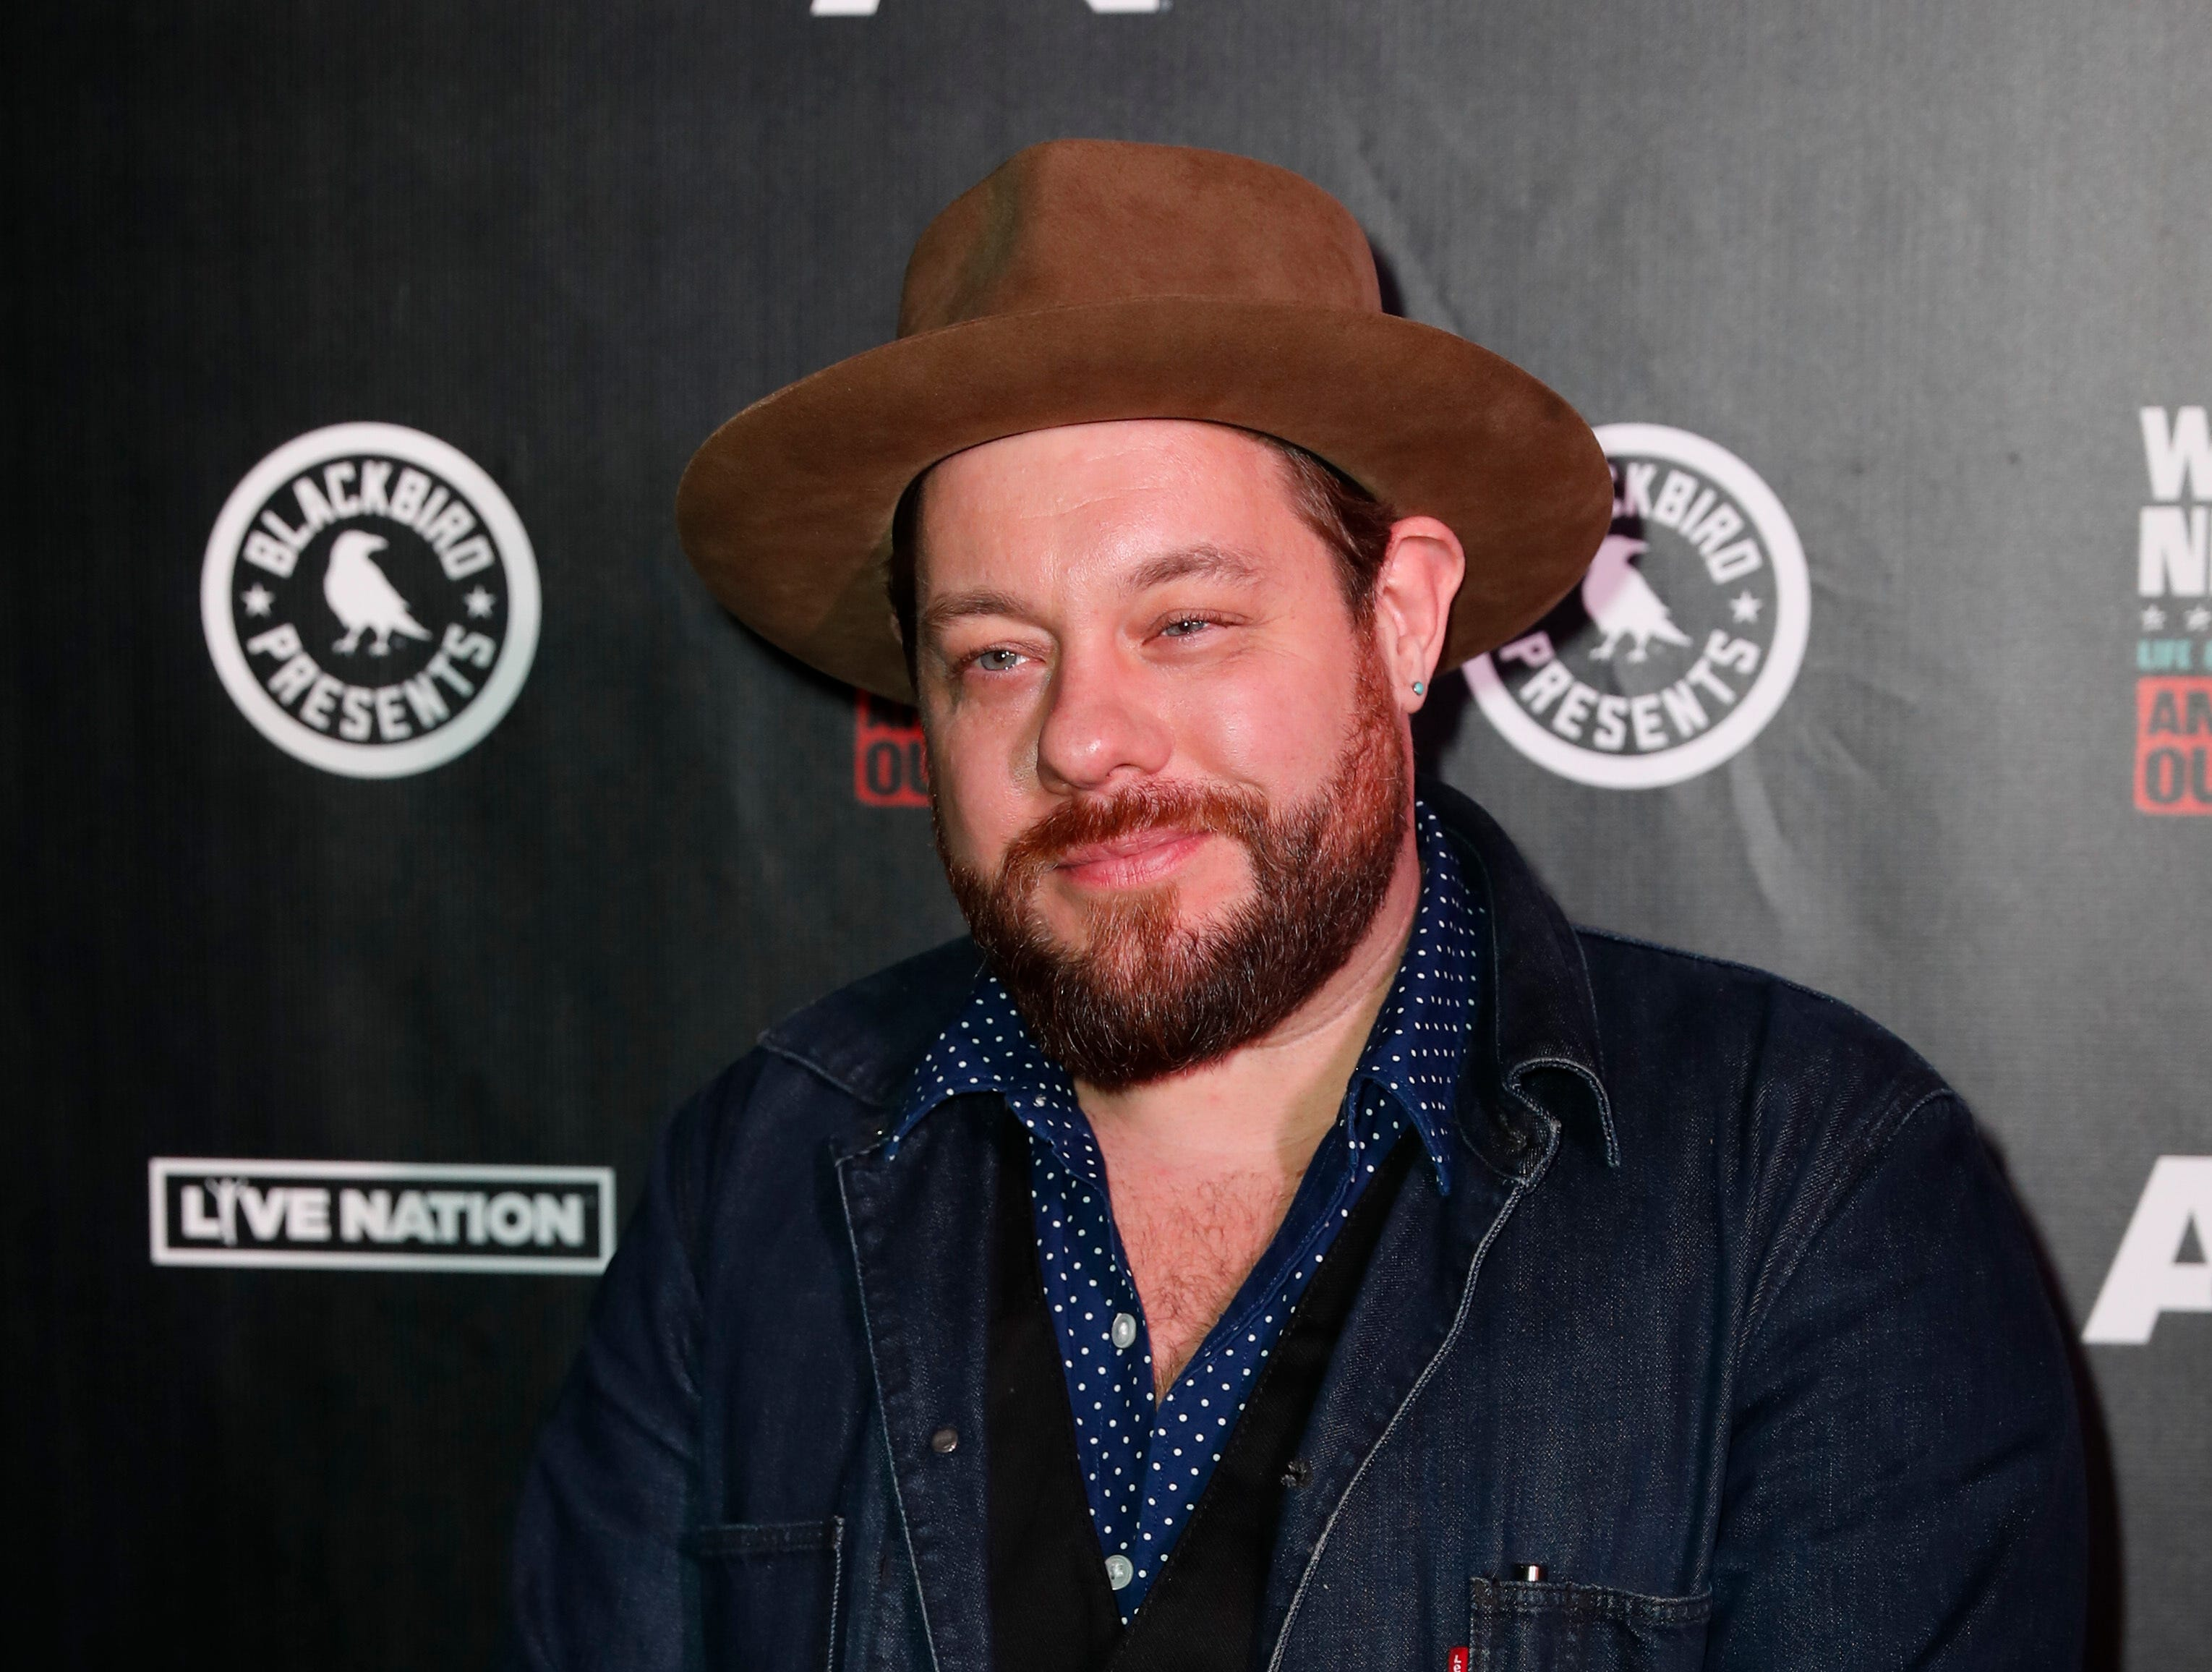 Nathaniel Rateliff arrives at Willie: Life & Songs Of An American Outlaw at Bridgestone Arena on Saturday, January 12, 2019, in Nashville, Tenn. (Photo by Al Wagner/Invision/AP)